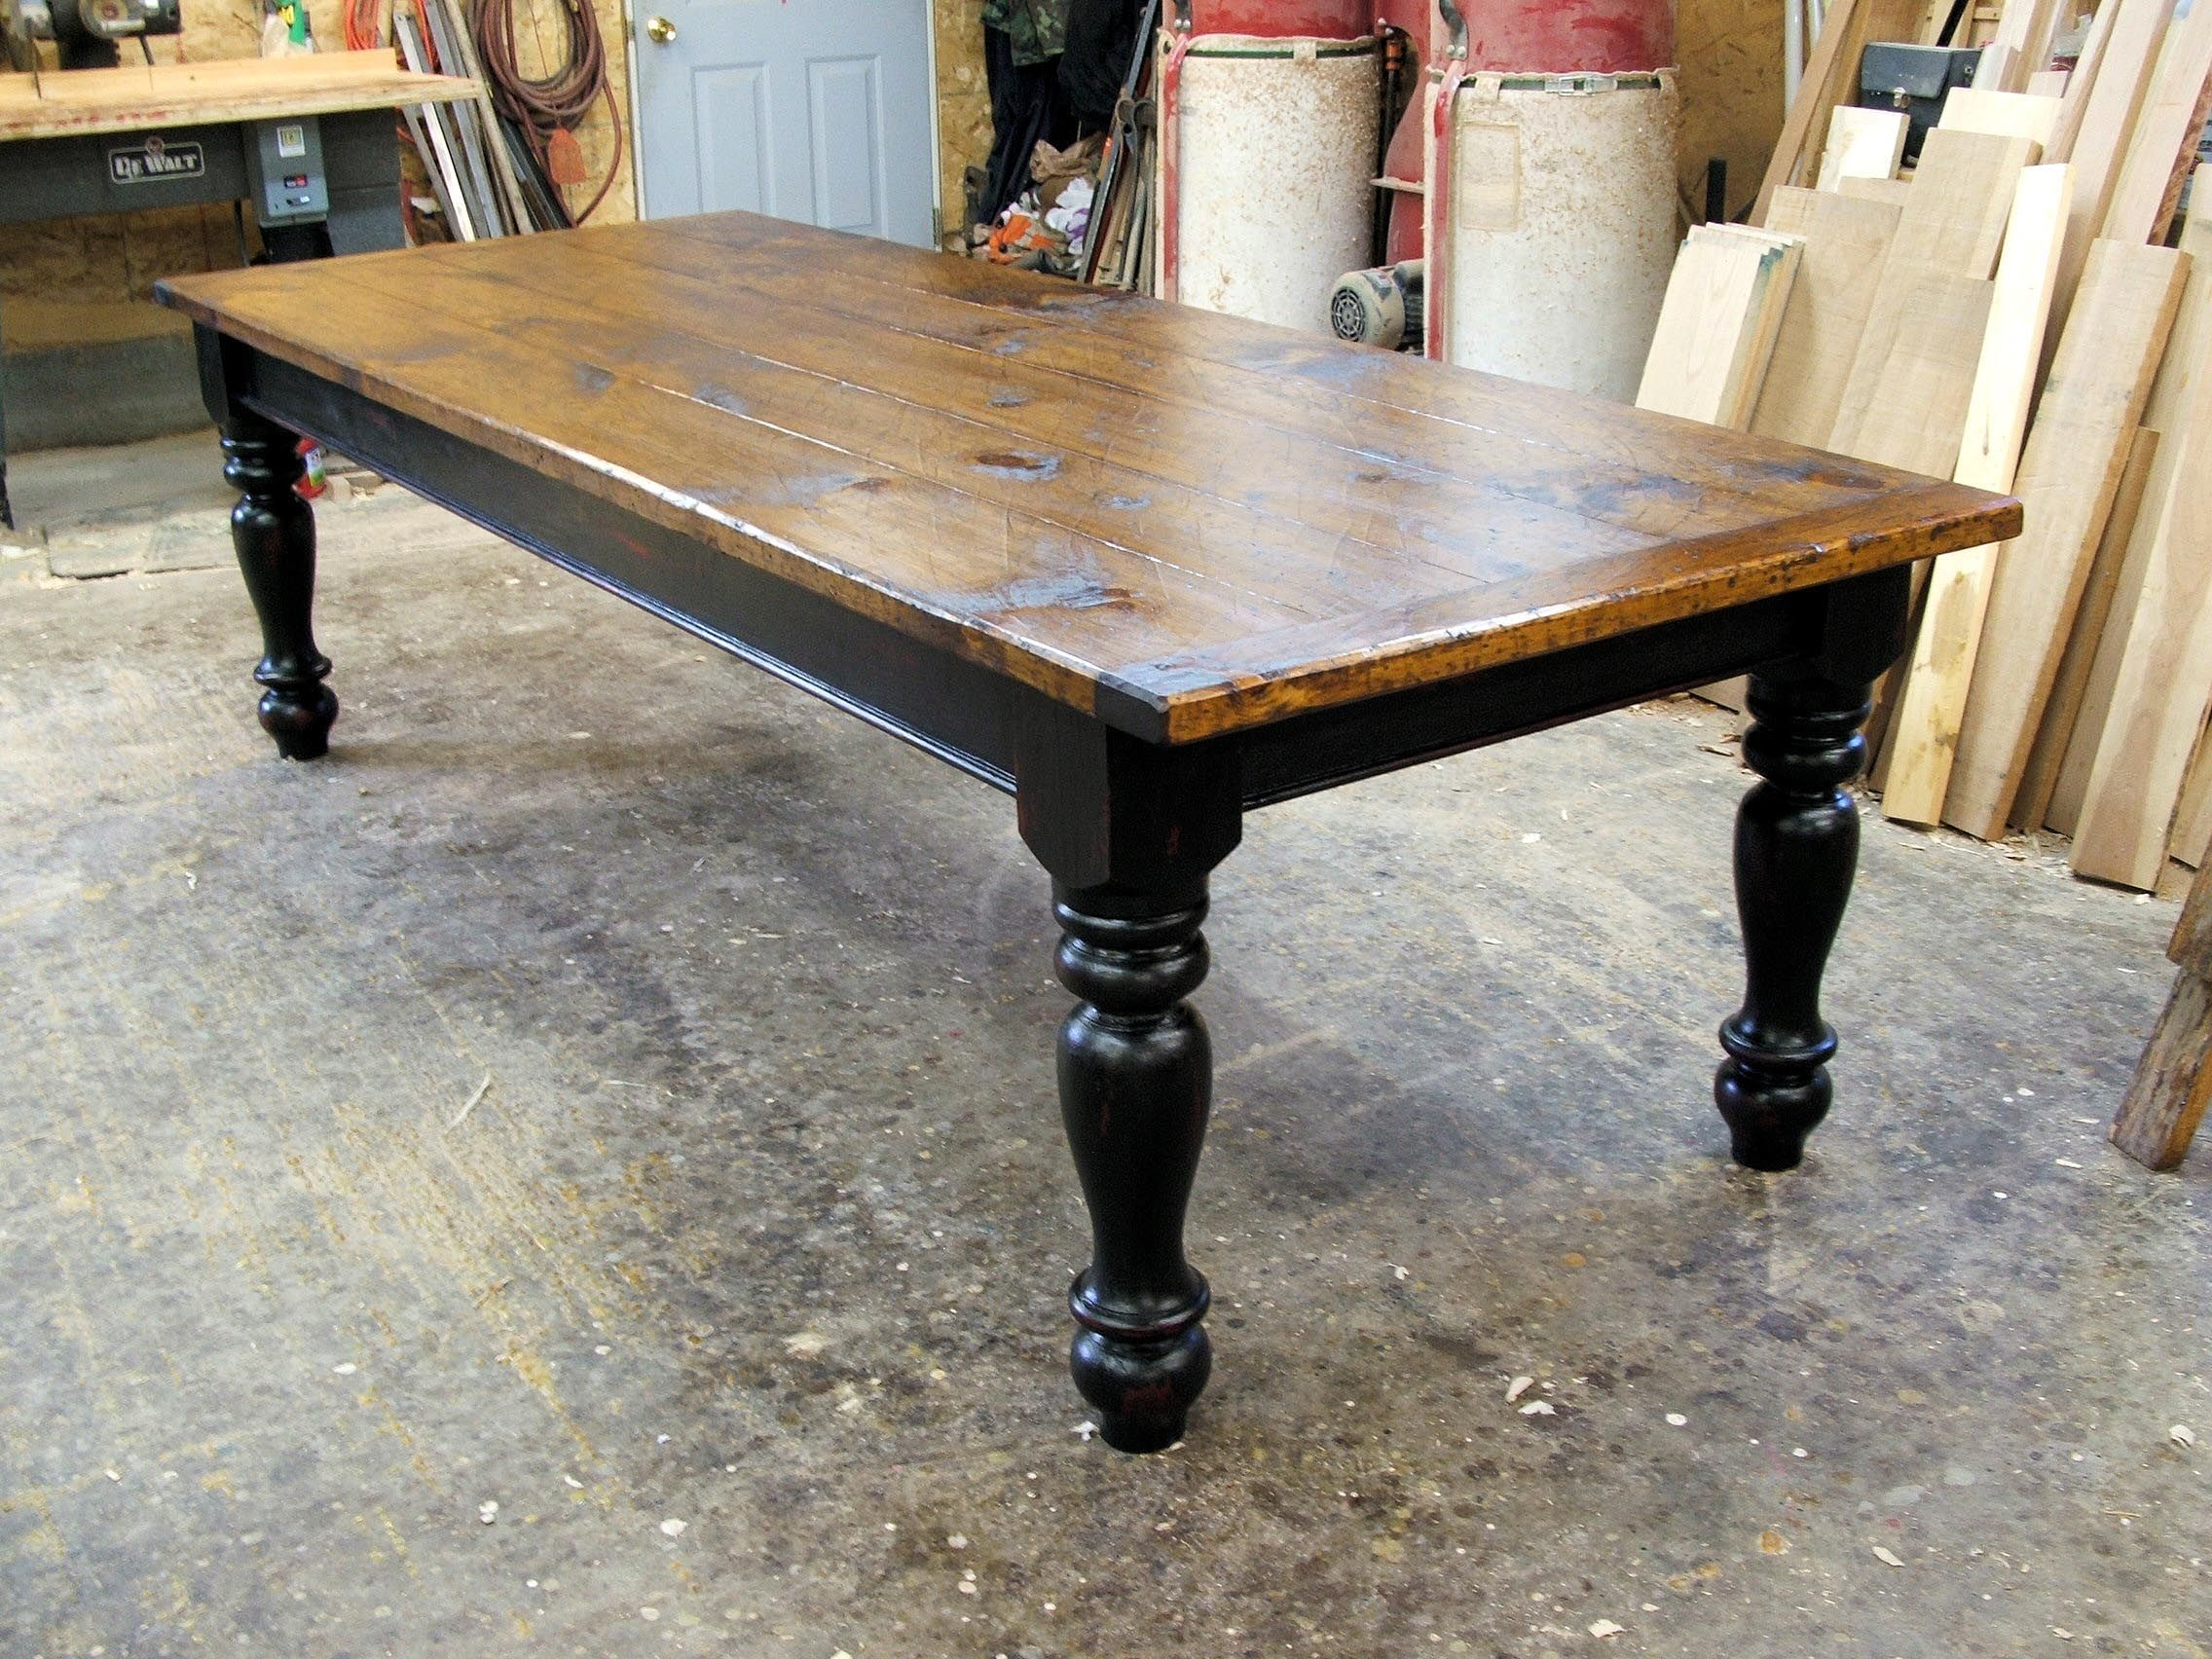 Affordable Furniture Reclaimed Pine Wood Farmhouse Table For Good Looking  Dining Room Design Inspiring High Gloss